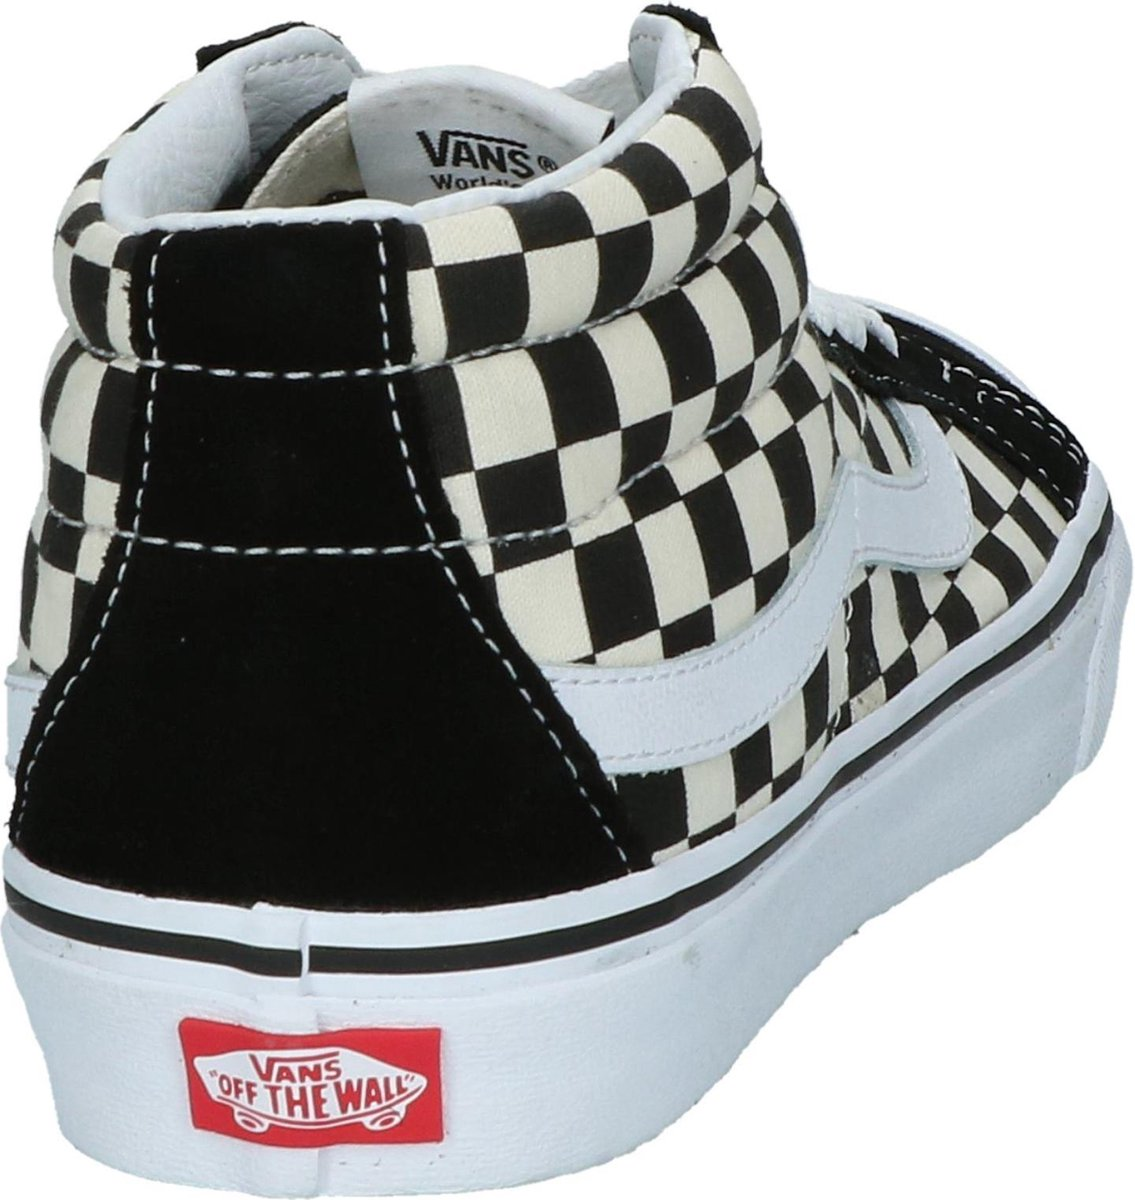 | Vans Dames Sneakers Sk8 Mid Reissue Checkerboard